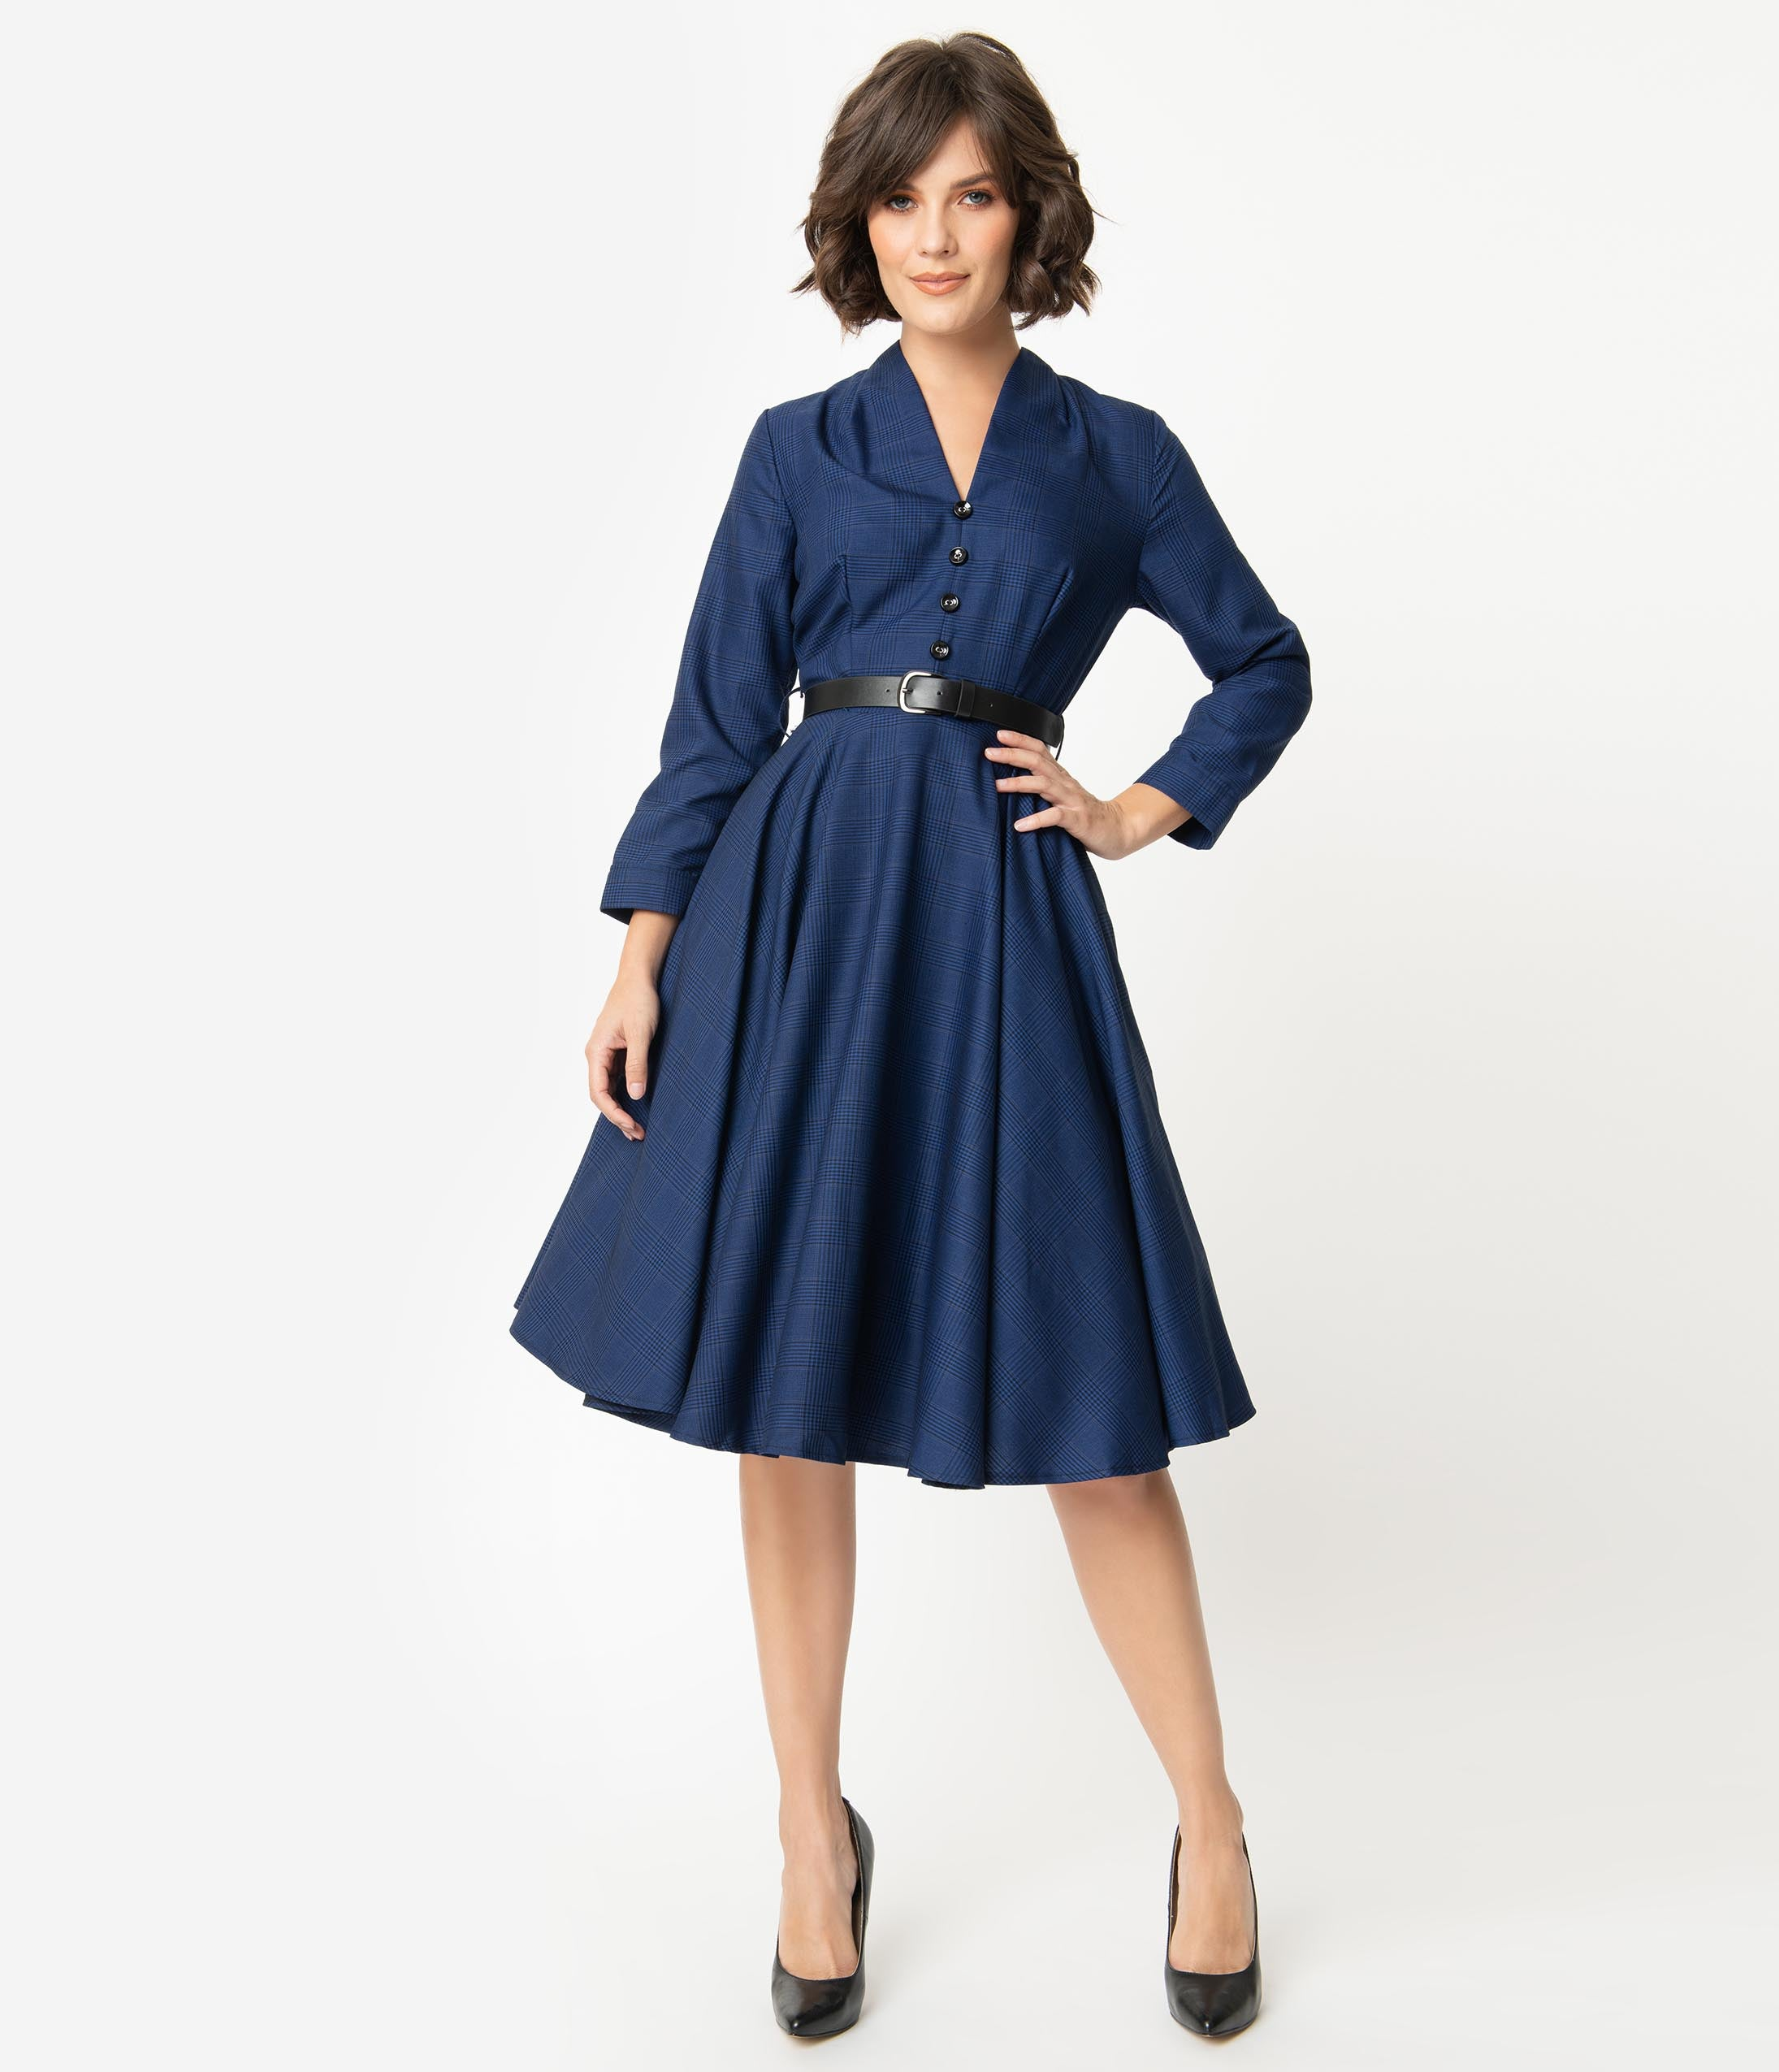 500 Vintage Style Dresses for Sale | Vintage Inspired Dresses 1950S Style Navy Glen Check Long Sleeve Helena Swing Dress $98.00 AT vintagedancer.com